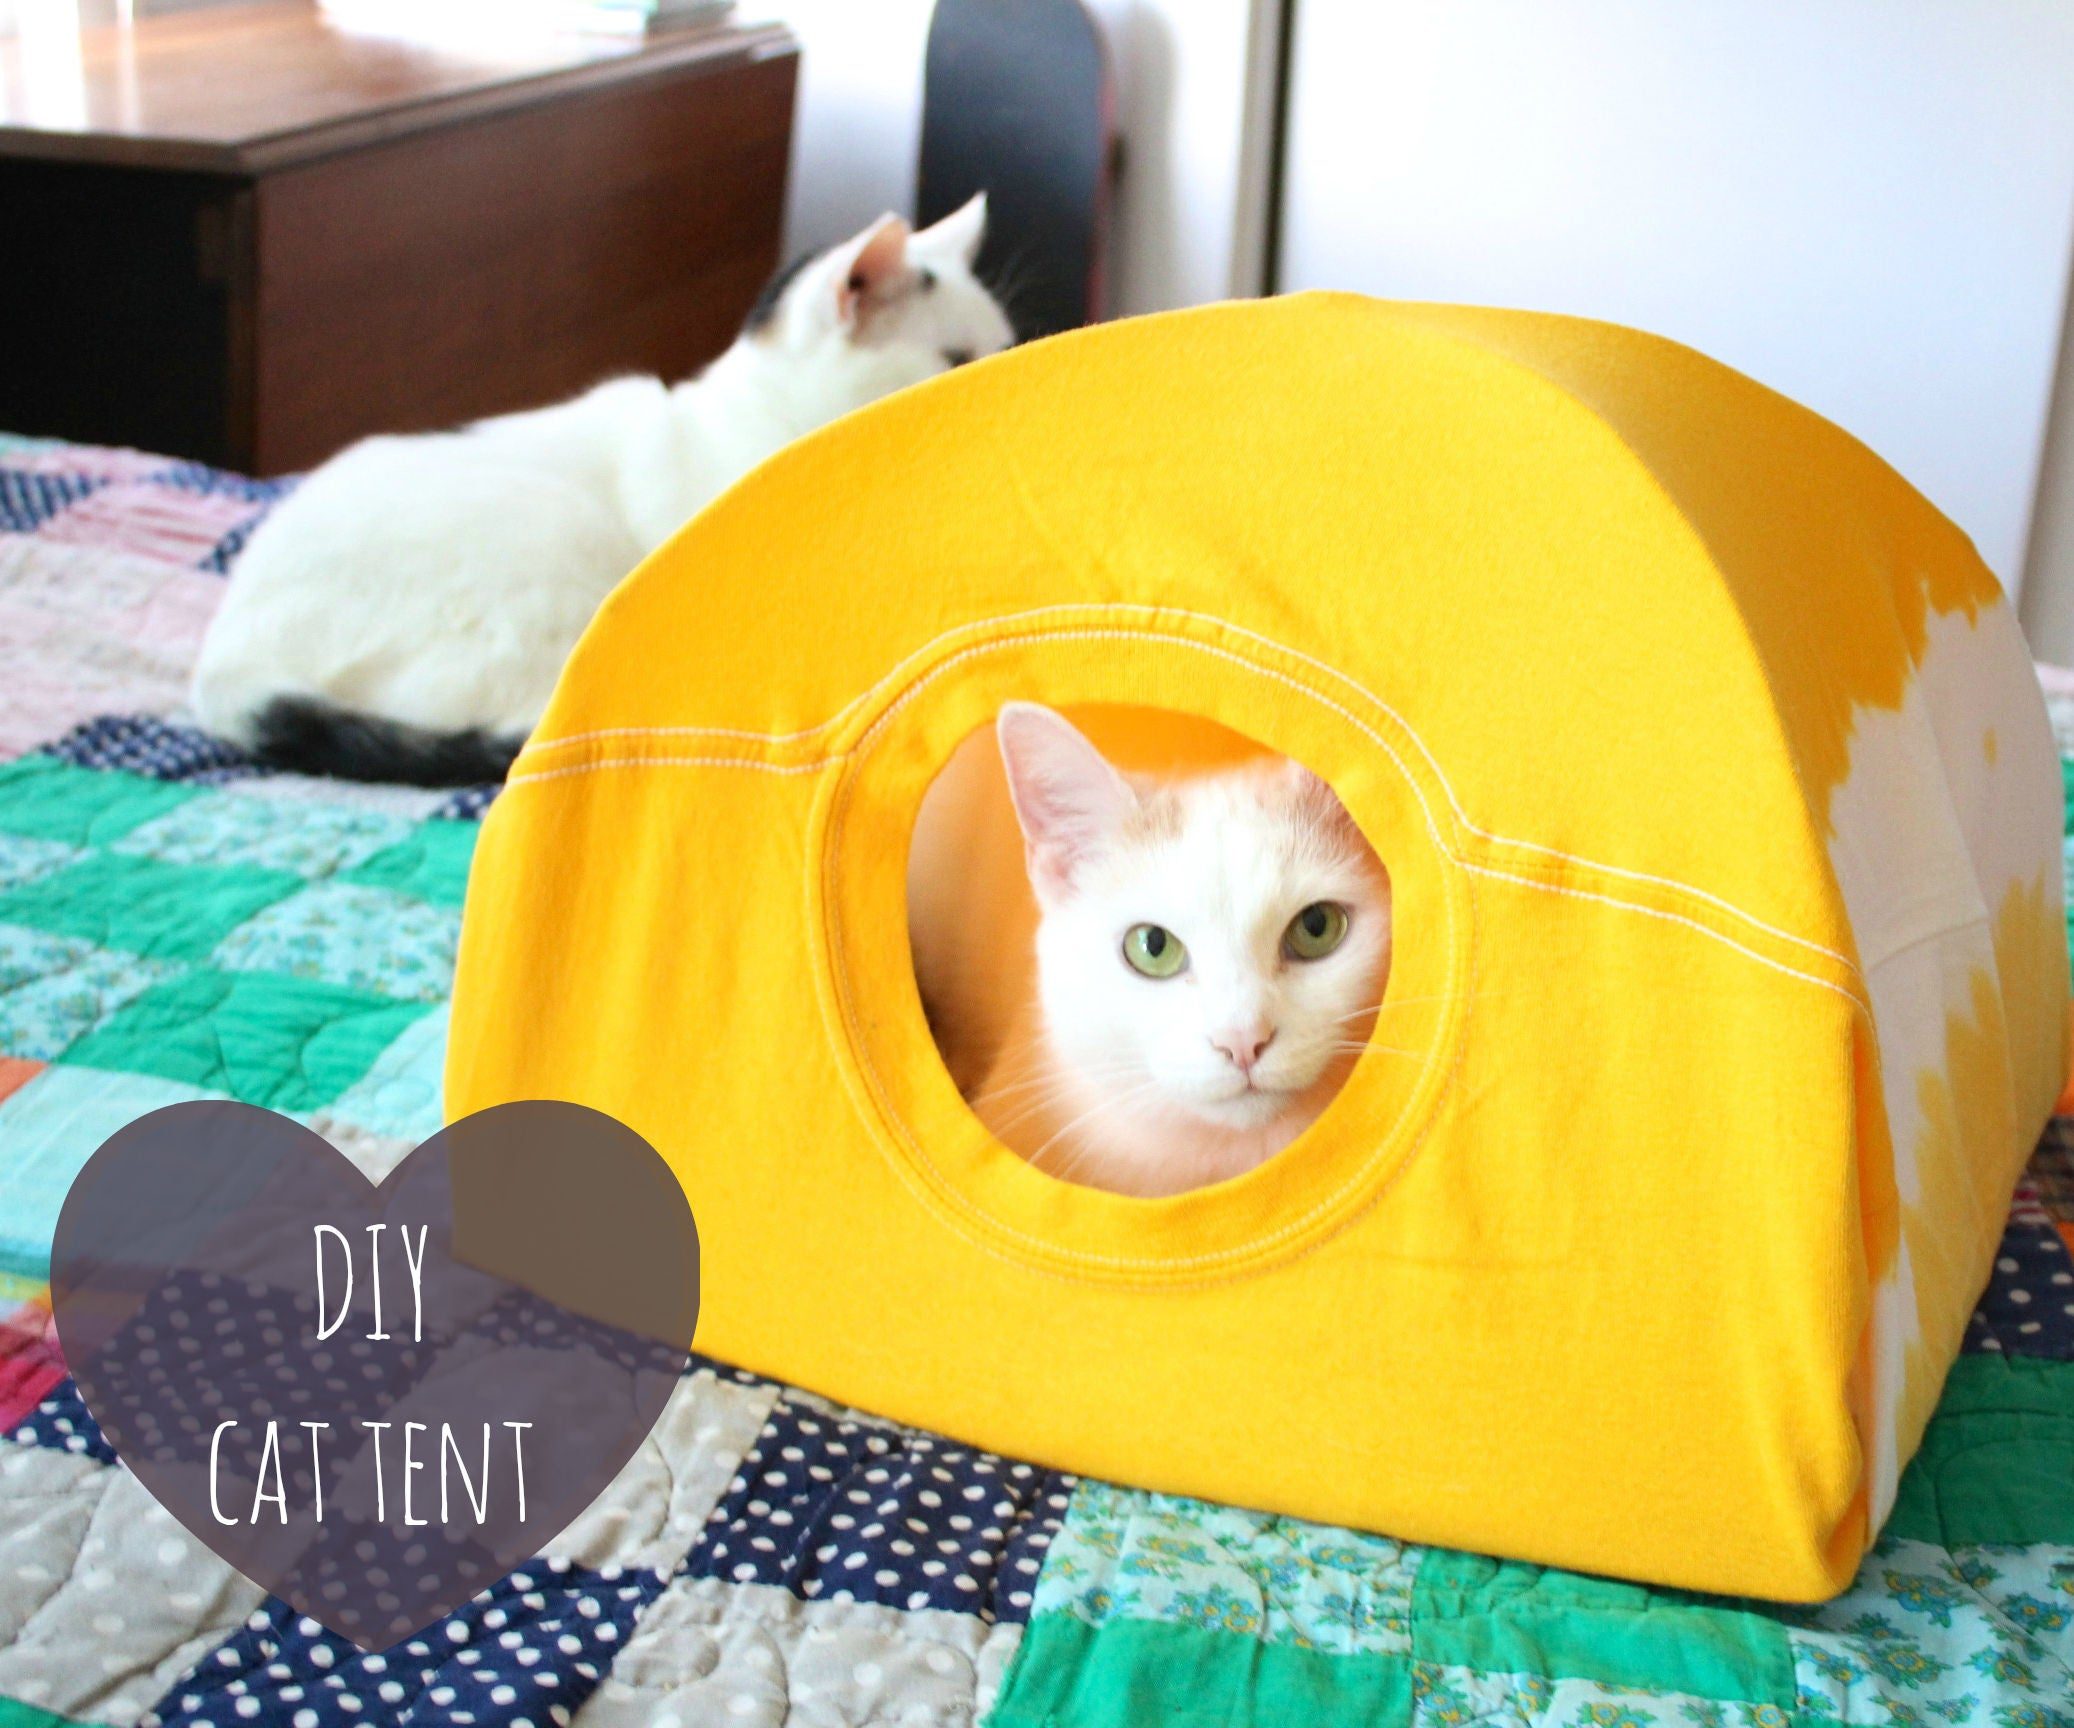 Diy Cat Tent 9 Steps With Pictures Instructables